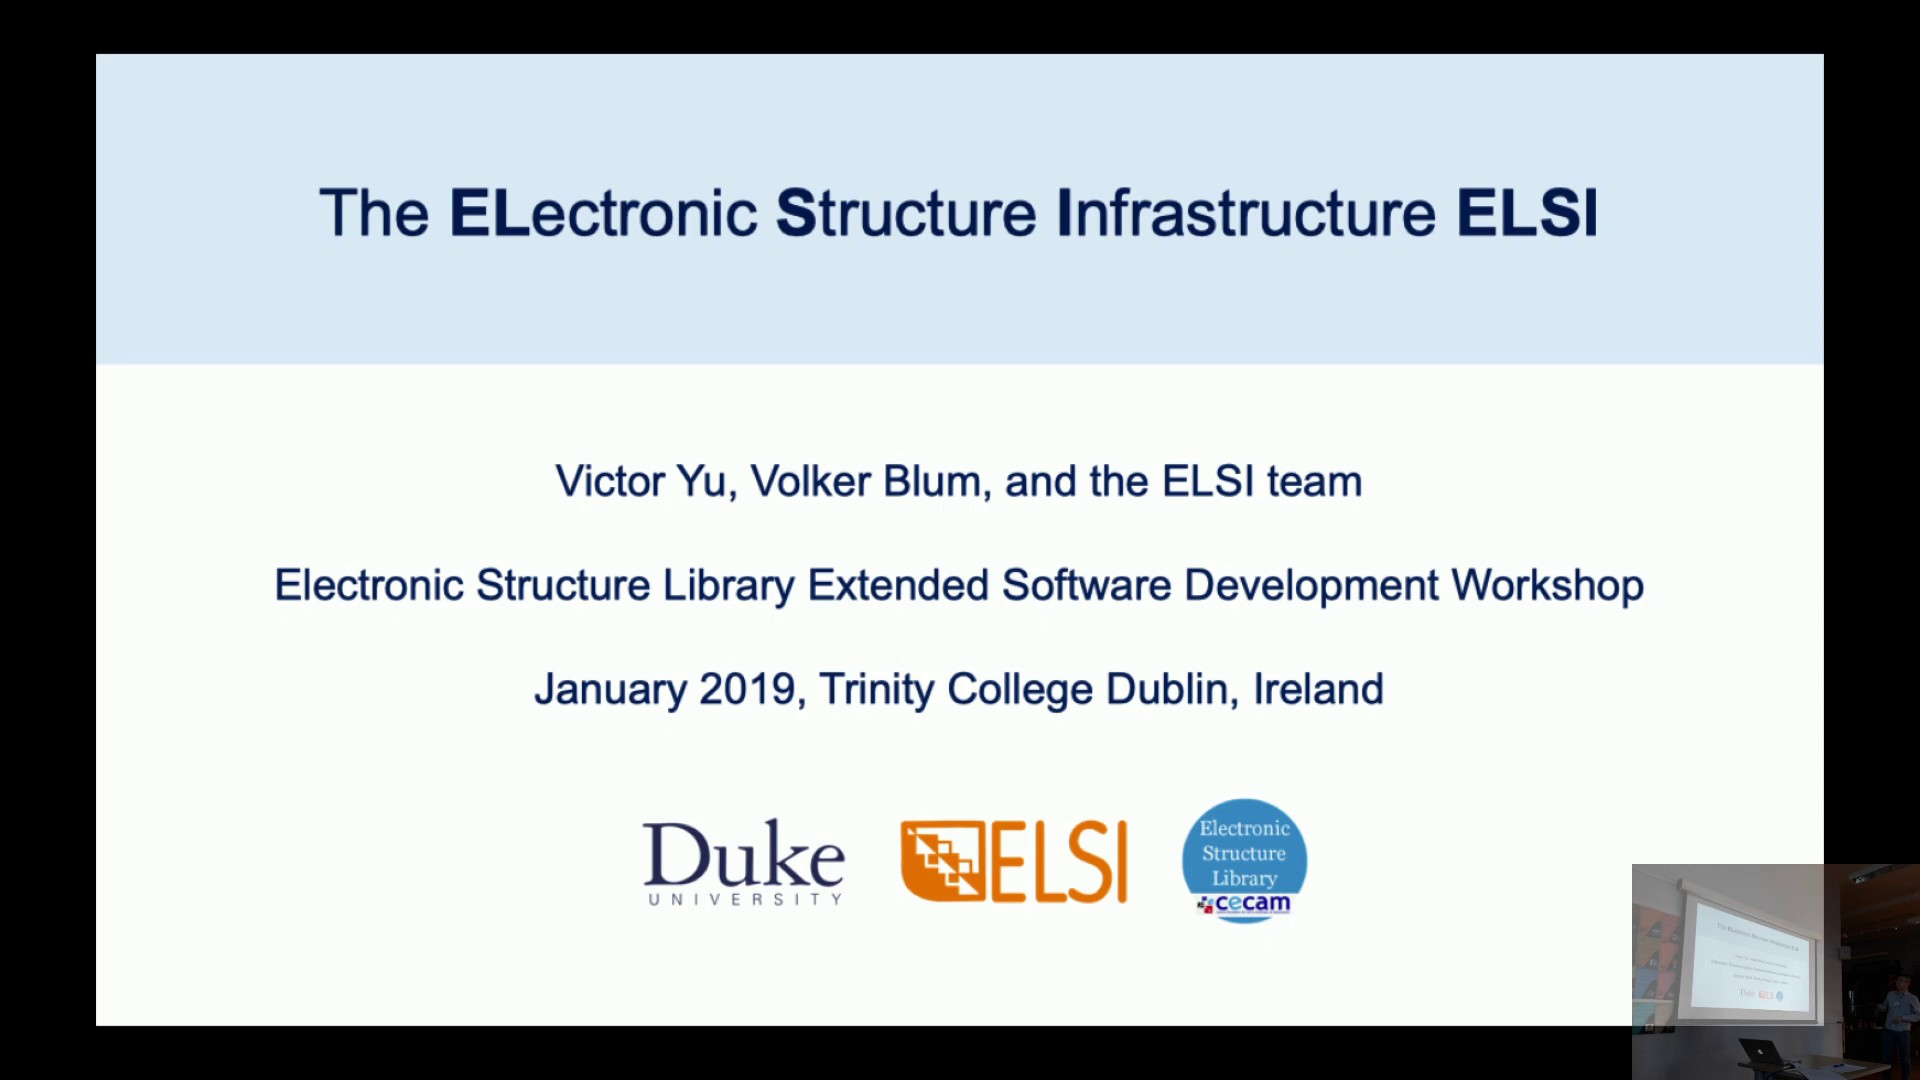 Thumbnail of The Electronic Structure Infrastructure ELSI